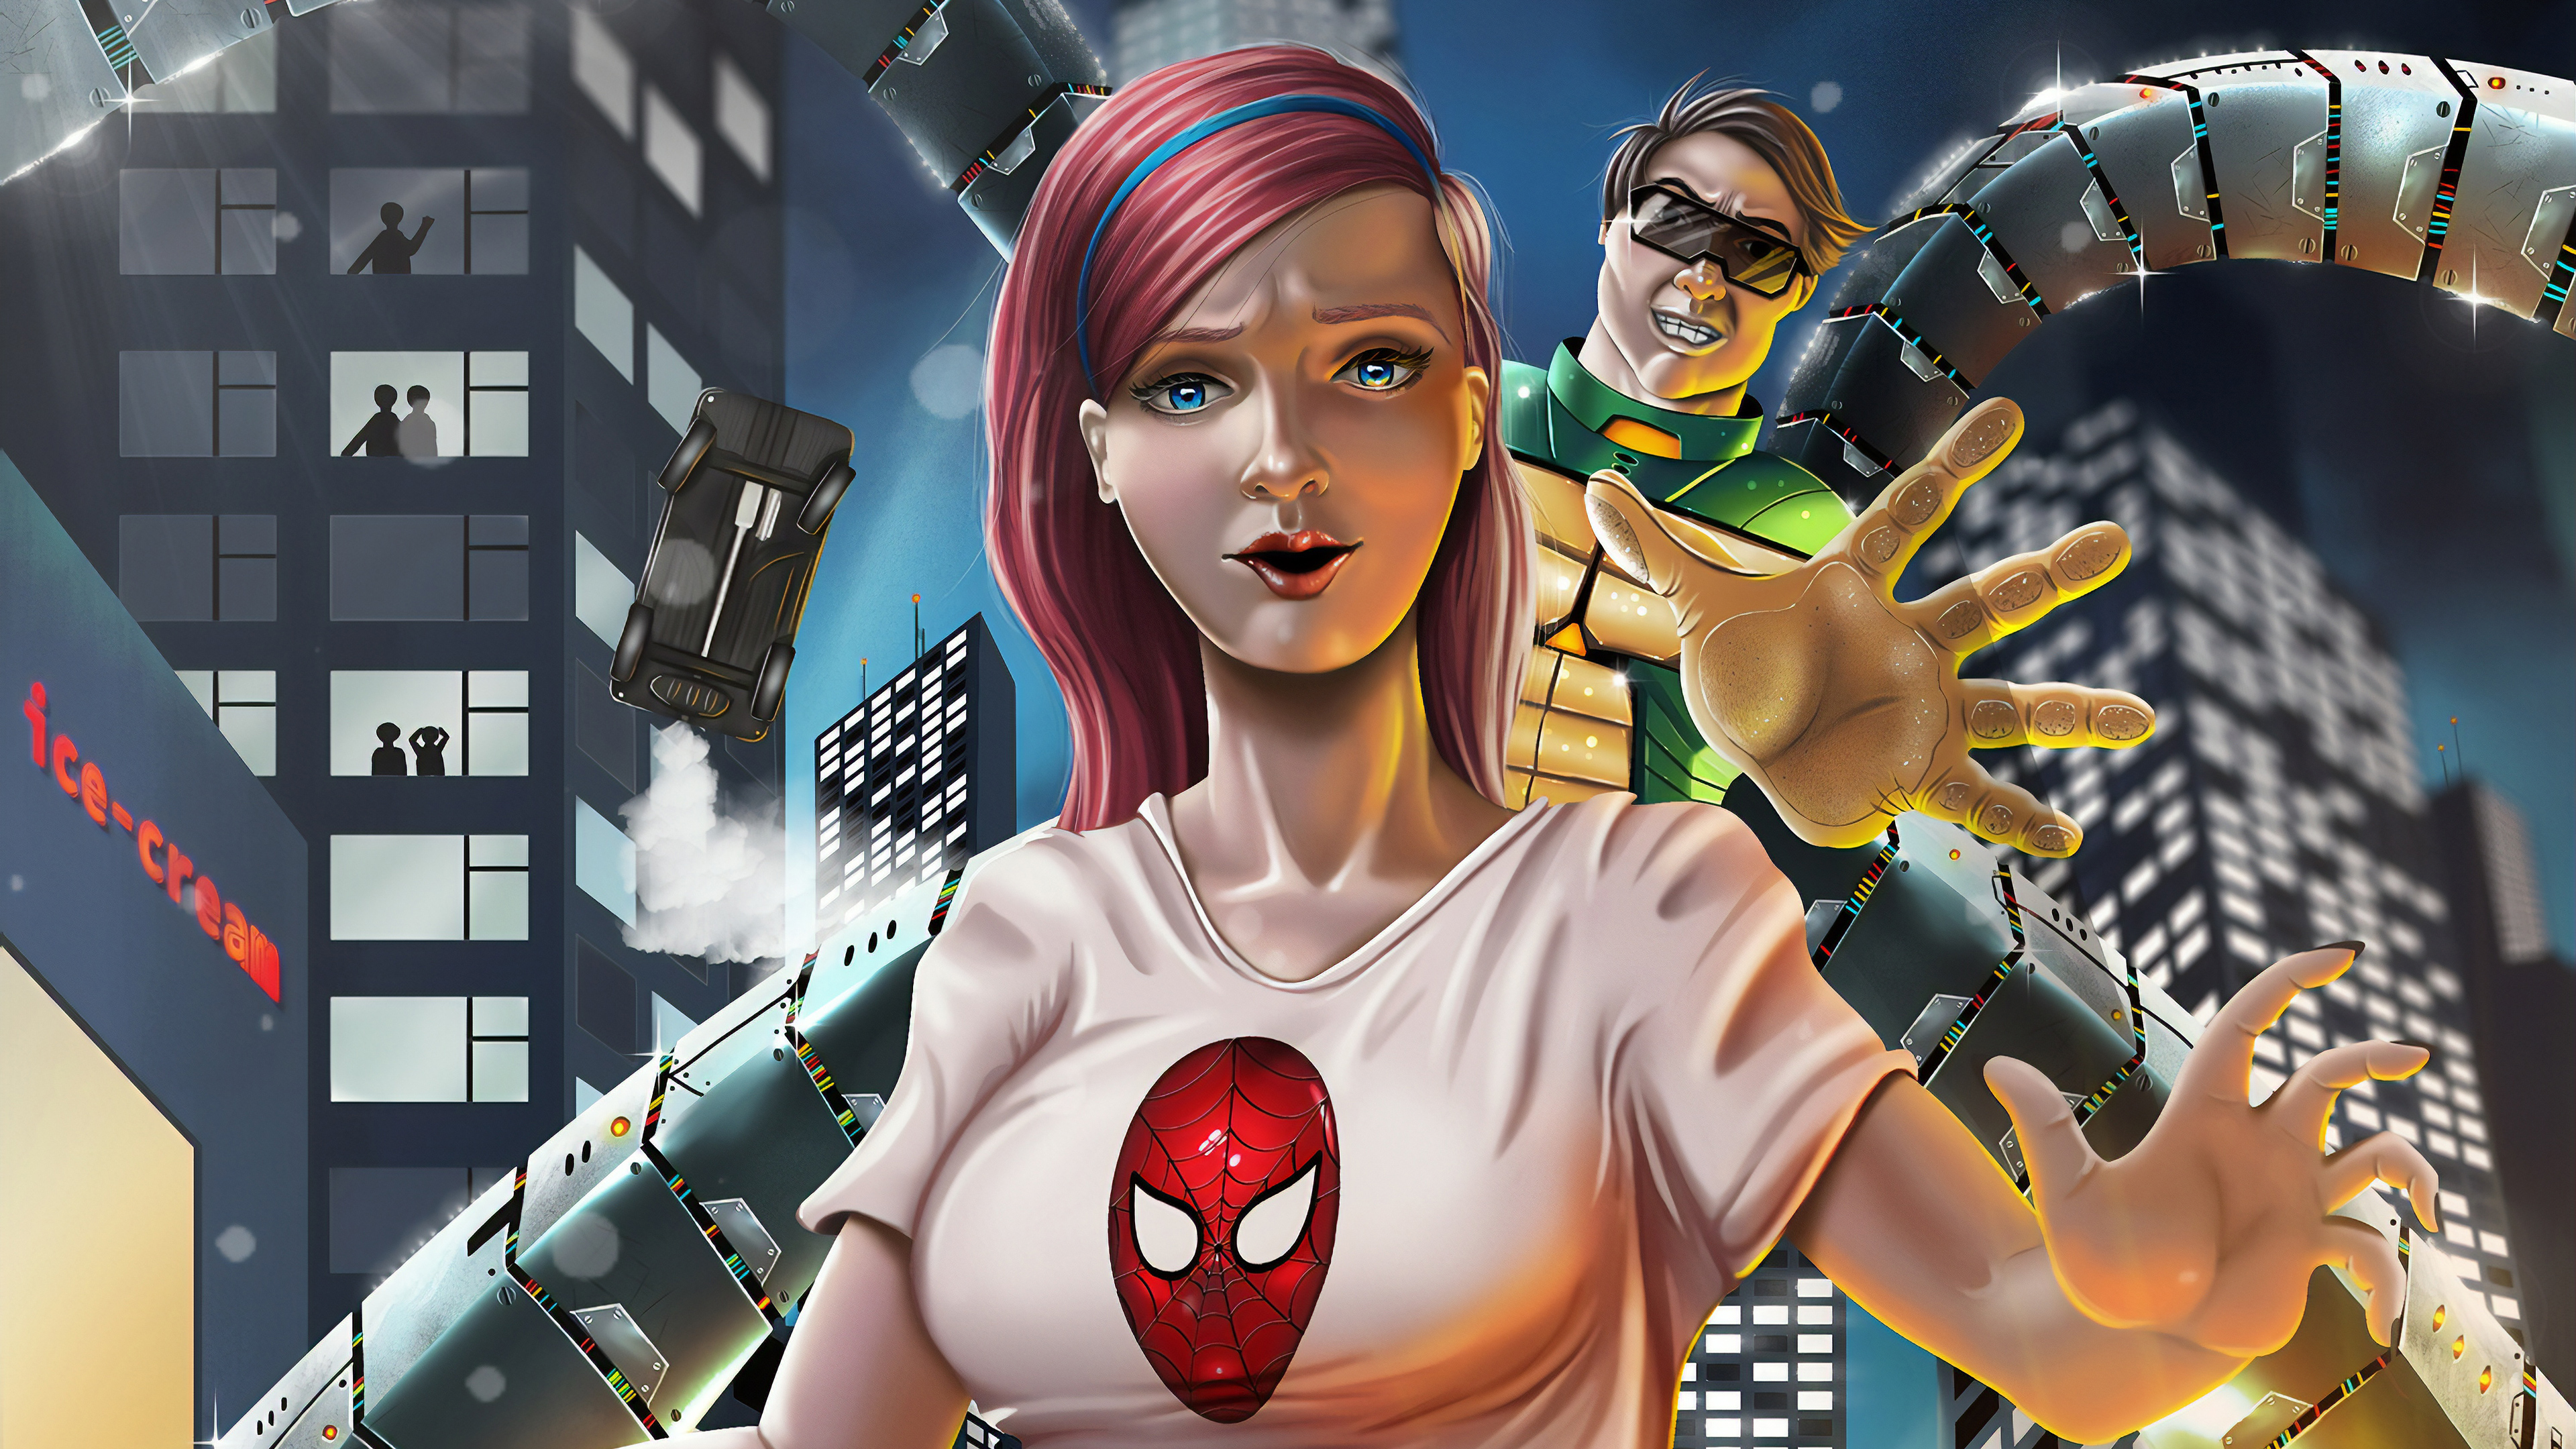 Wallpaper 4k Mary Jane Watson And Dr Octupus 4k Wallpapers Artist